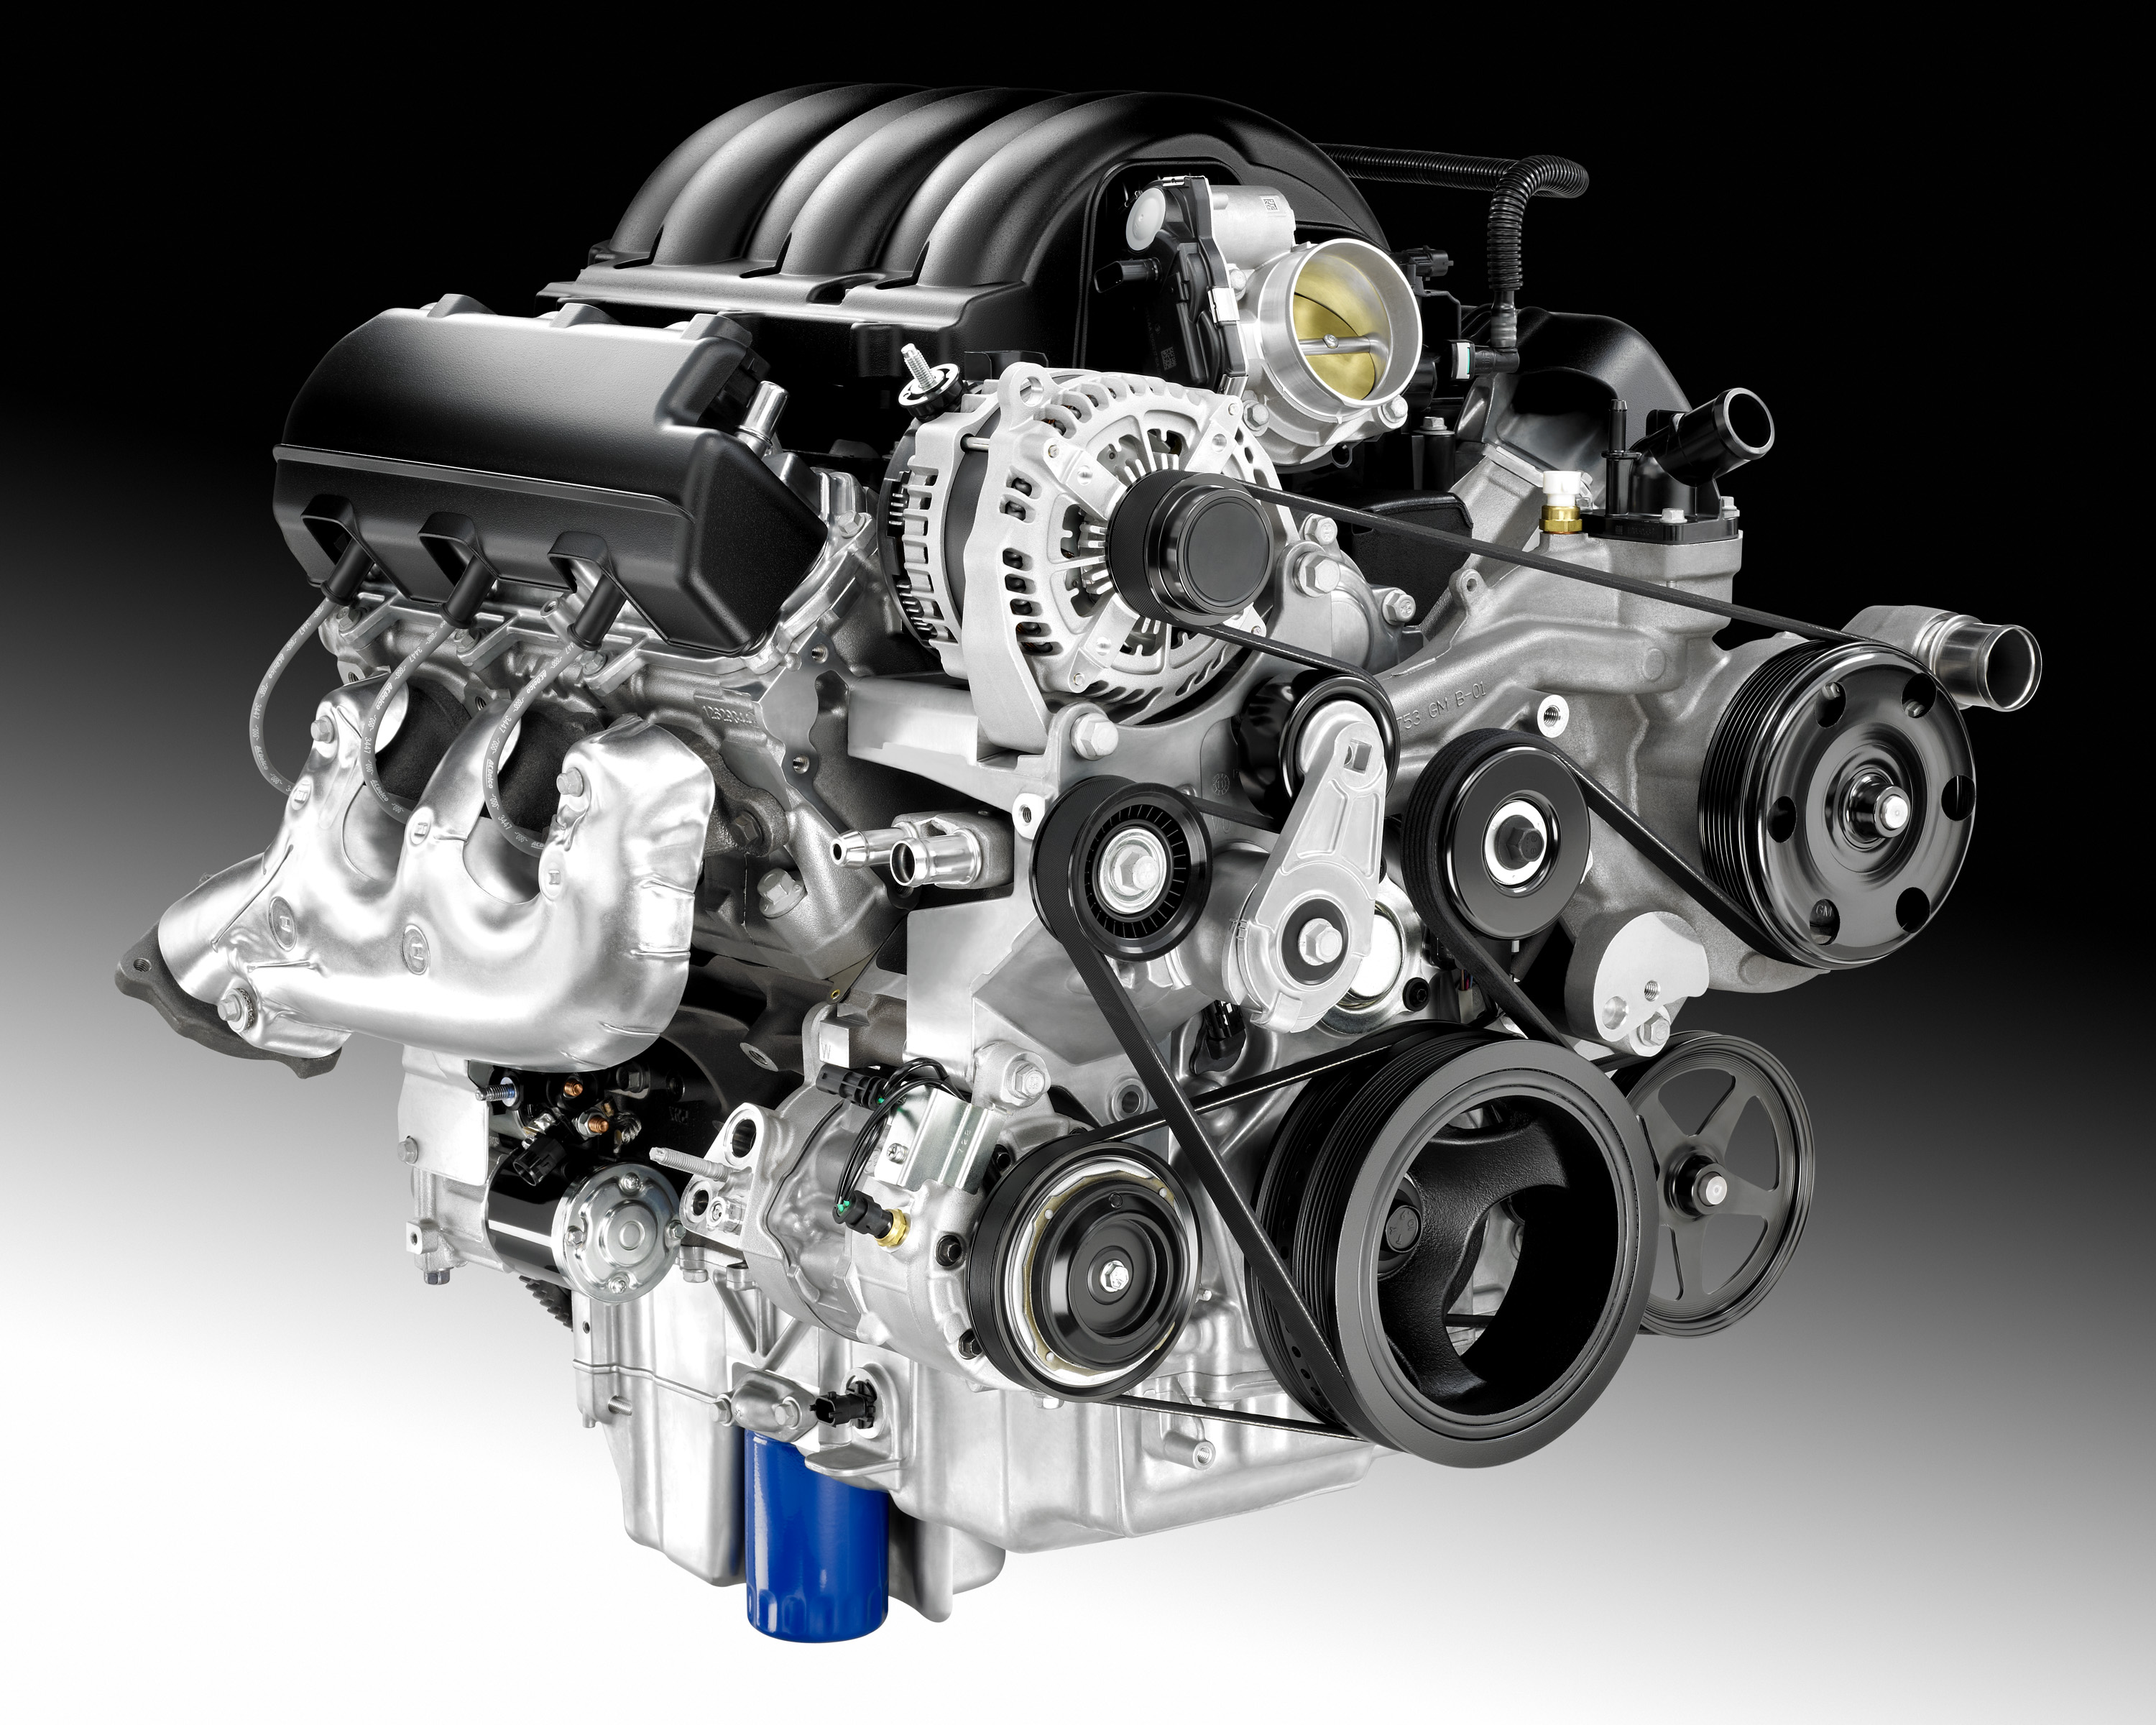 trio of new ecotec3 engines powers silverado and sierra rh media gm com GM V8 Engines Chevy LT1 Engine Blueprints